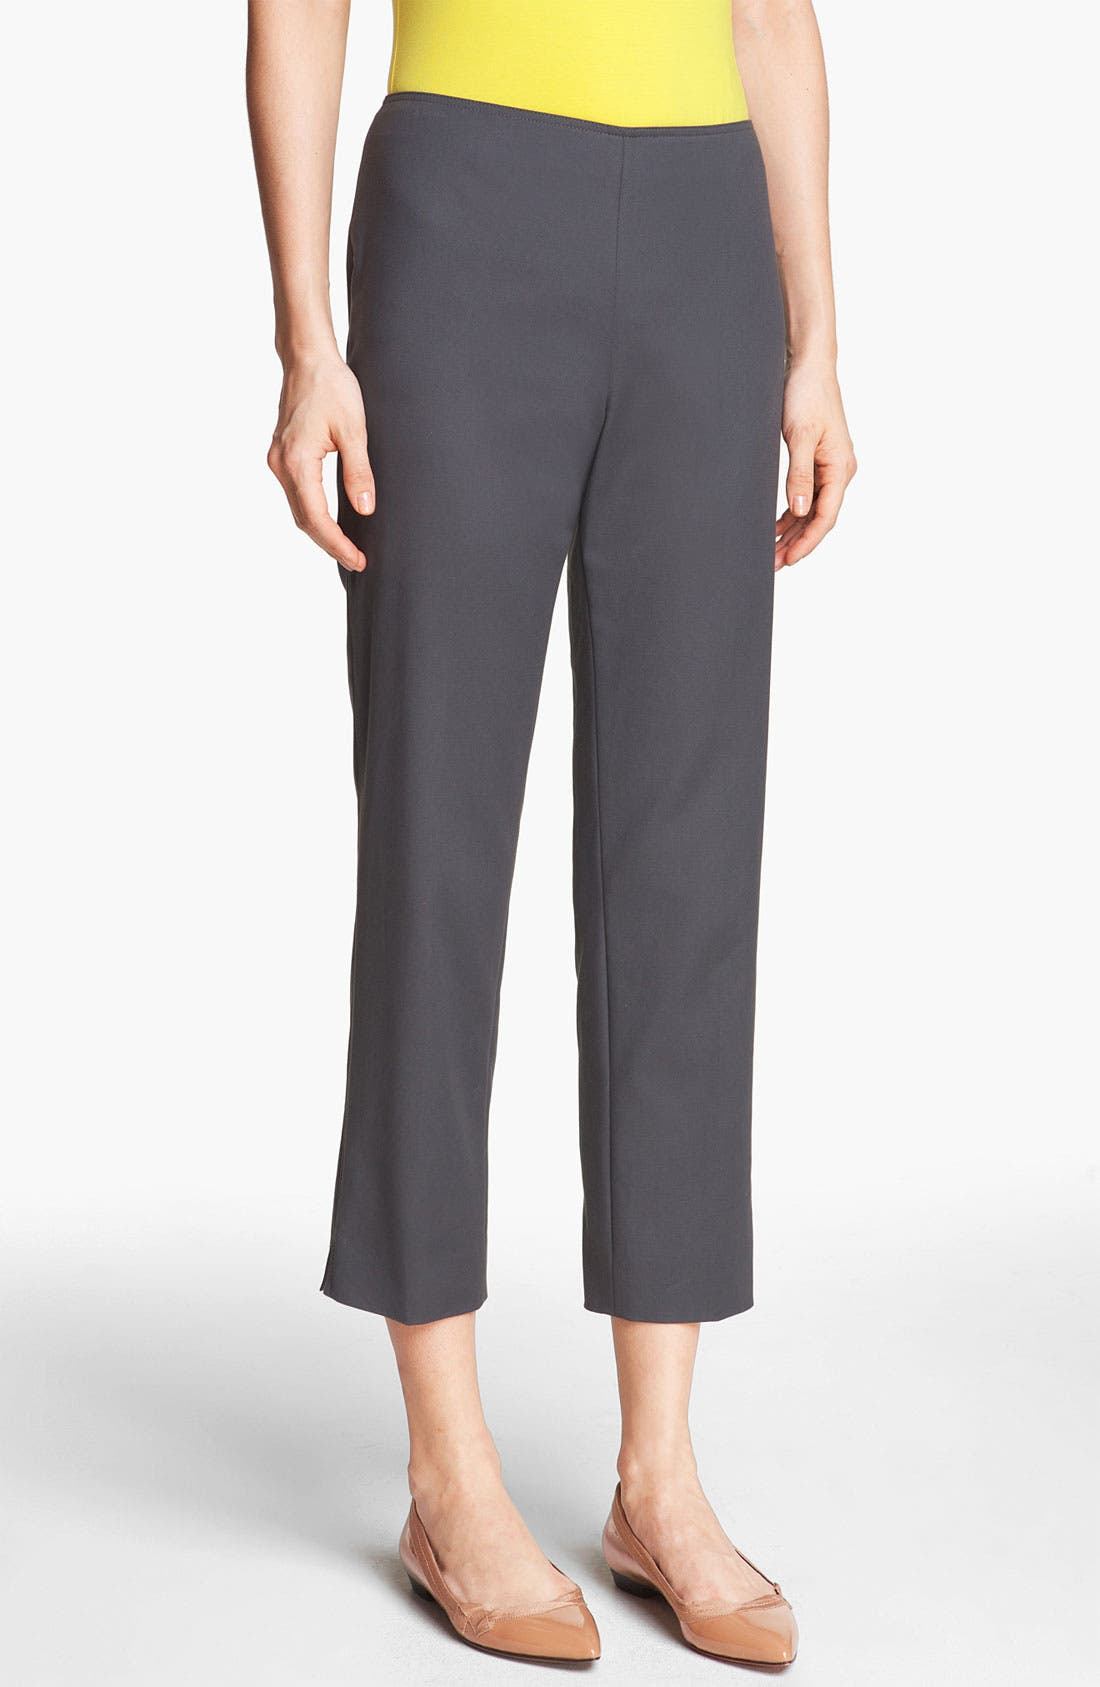 Main Image - St. John Yellow Label 'Audrey' Double Weave Stretch Cotton Capri Pants